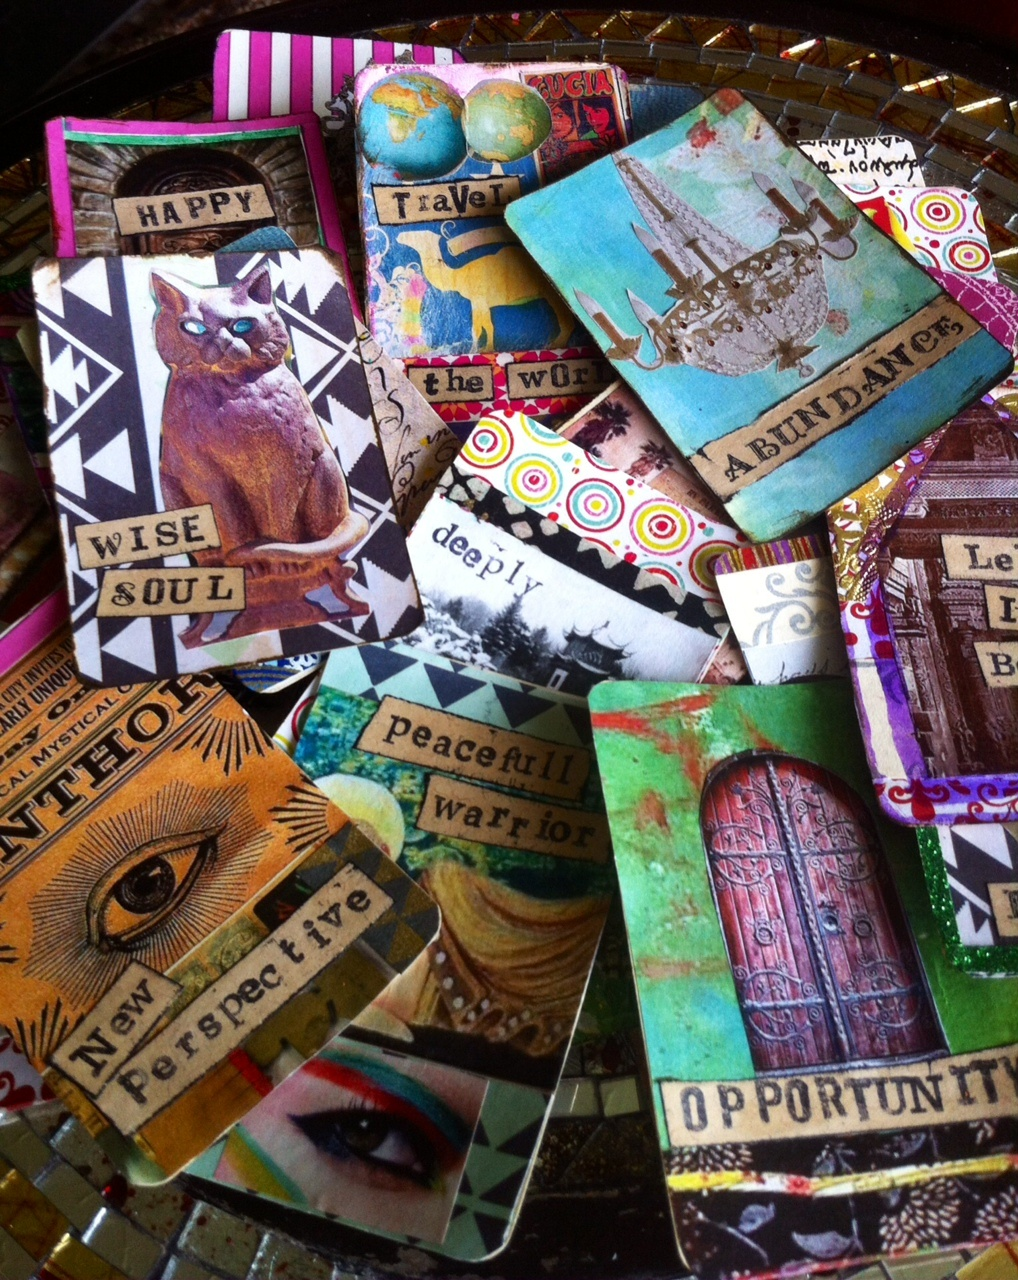 ART CLASS - CREATE YOUR OWN ORACLE DECK - MARCH 18, 25 & APRIL 1, 6 - 8 PM